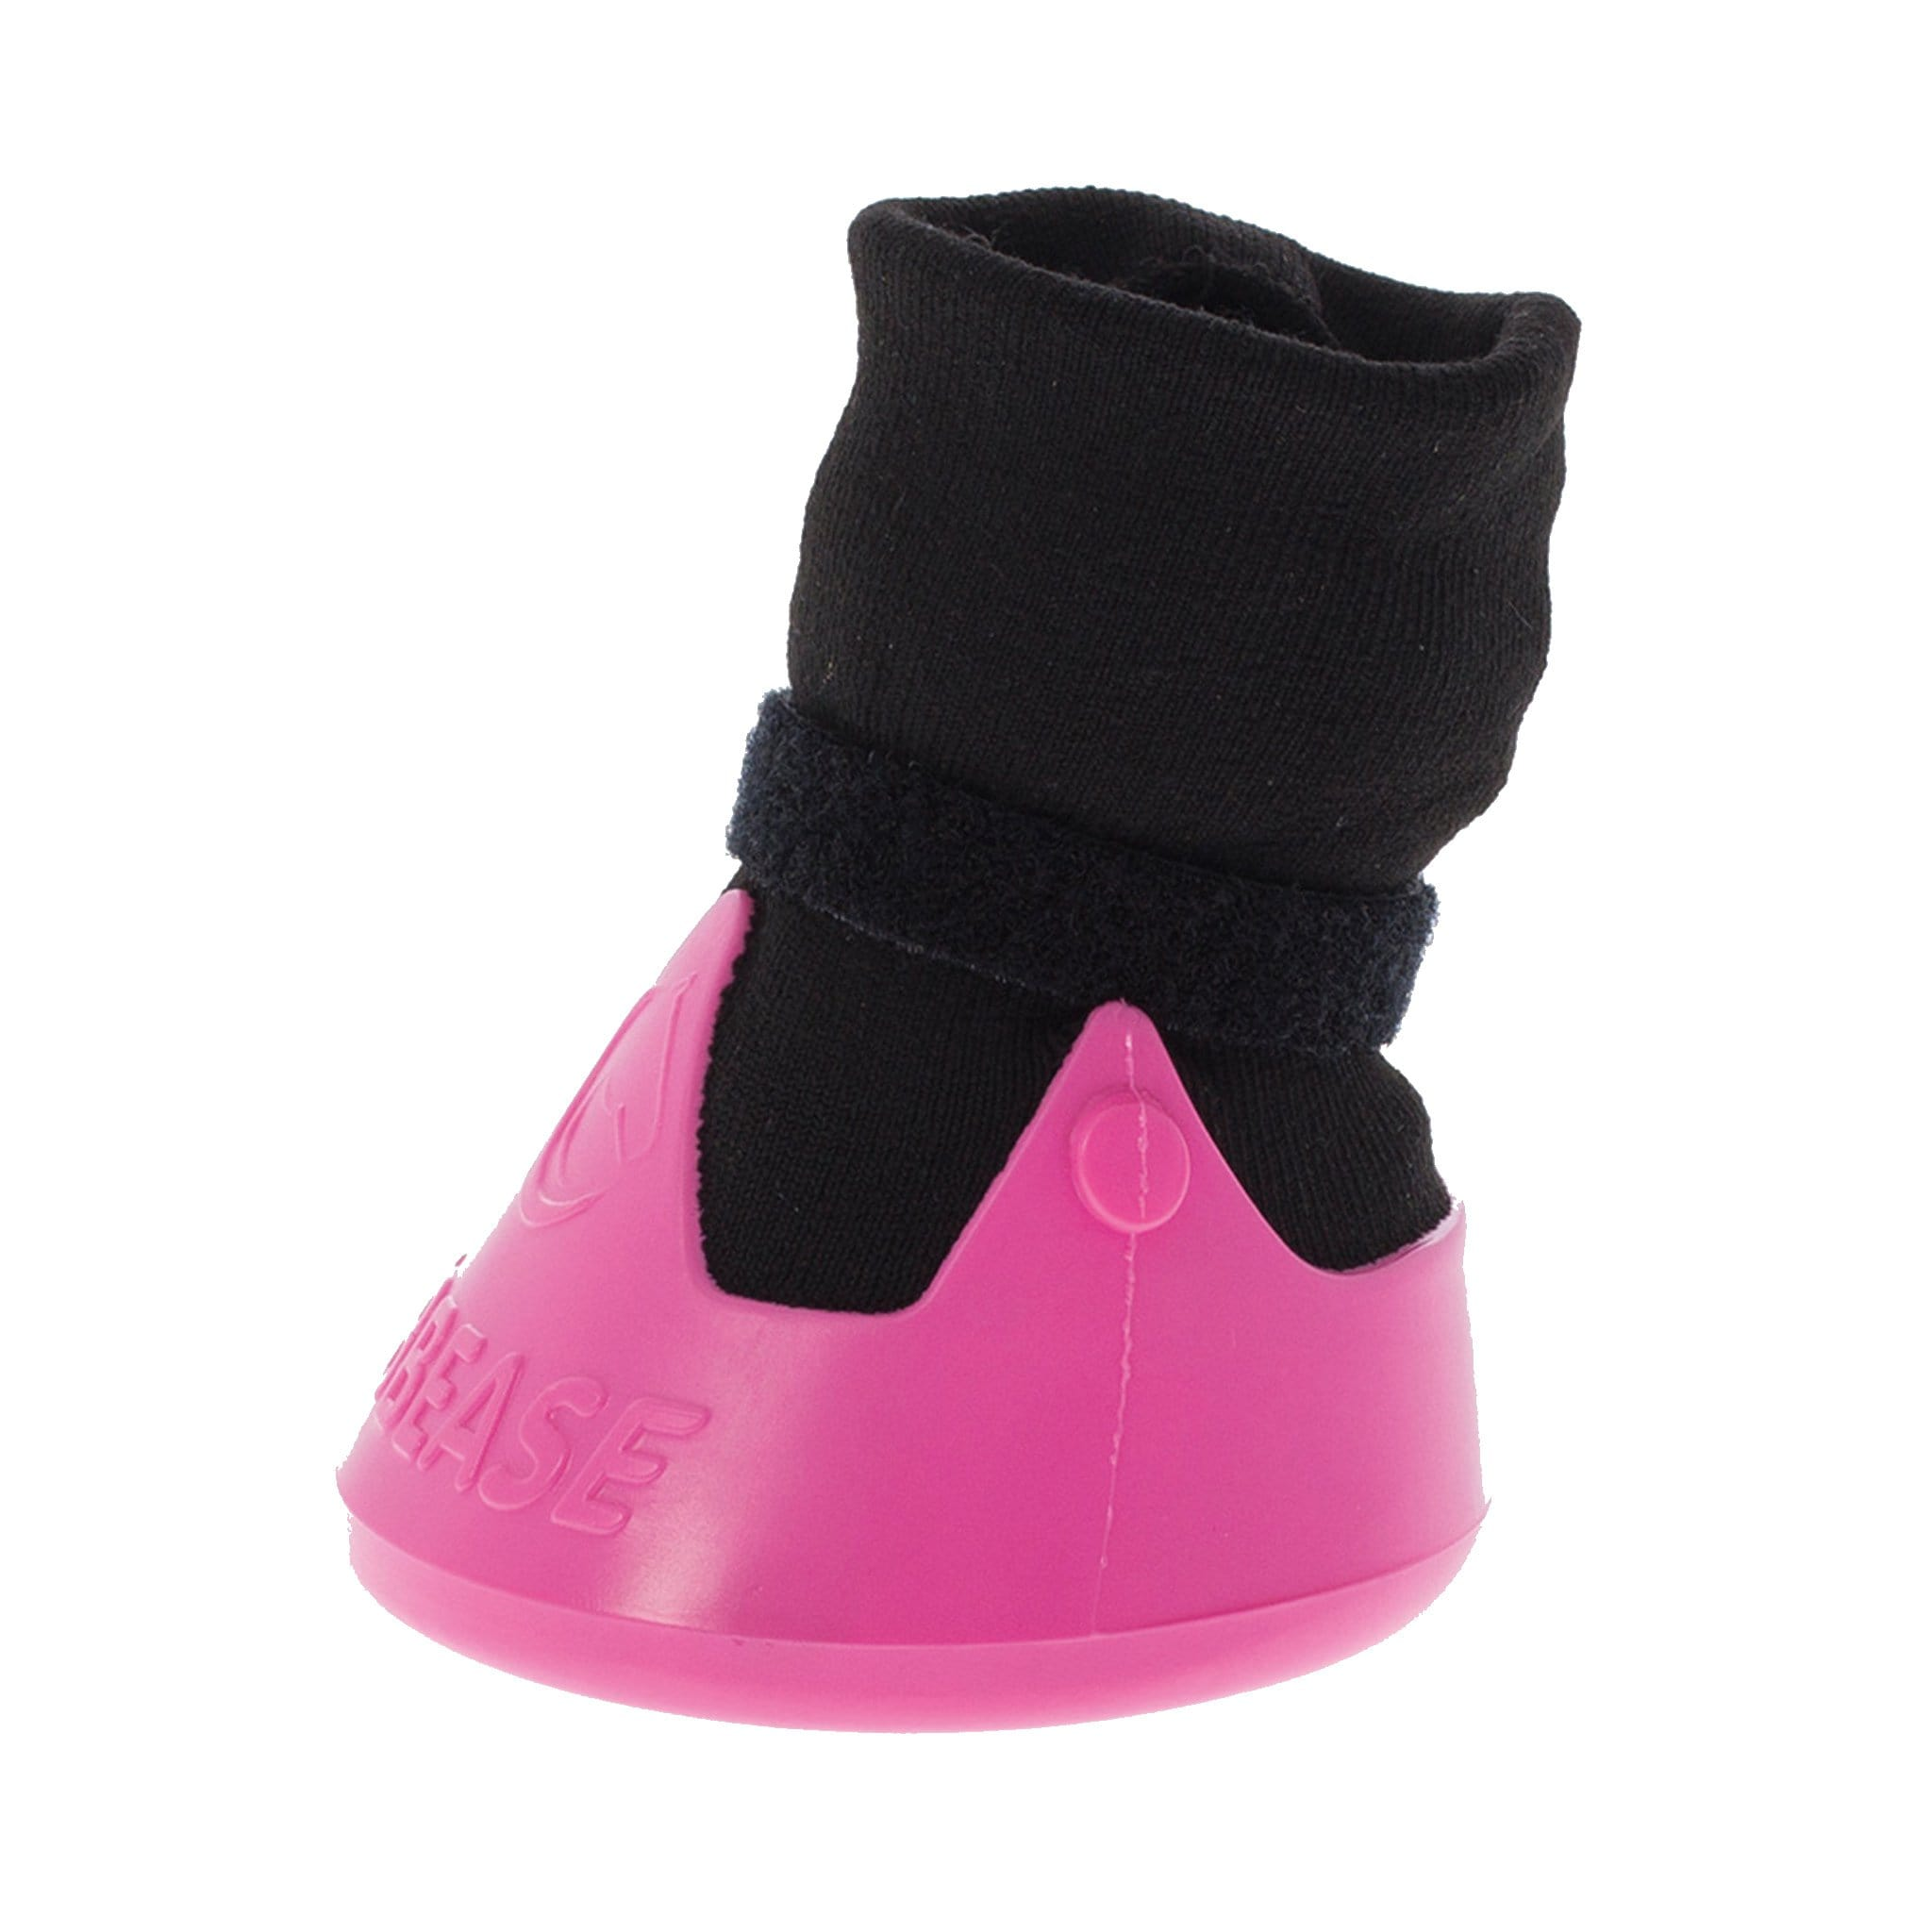 Shires Tubbease Hoof Sock Pink S 4060